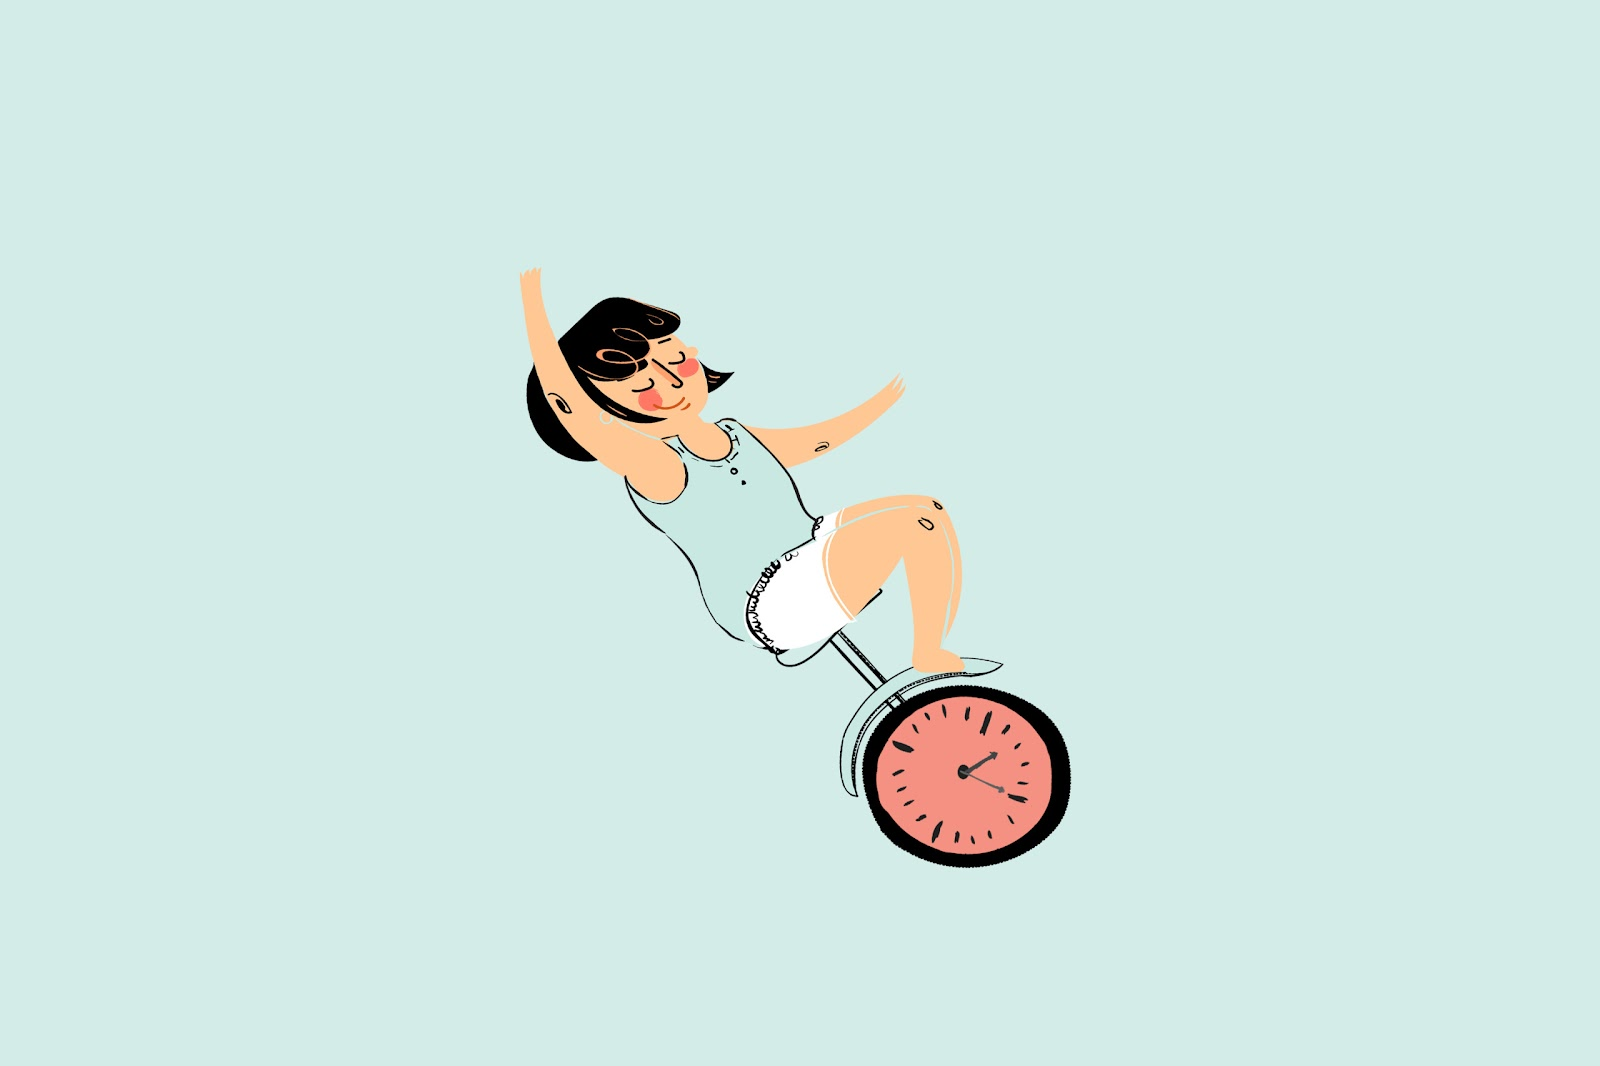 Illustration of woman balancing on a unicycle